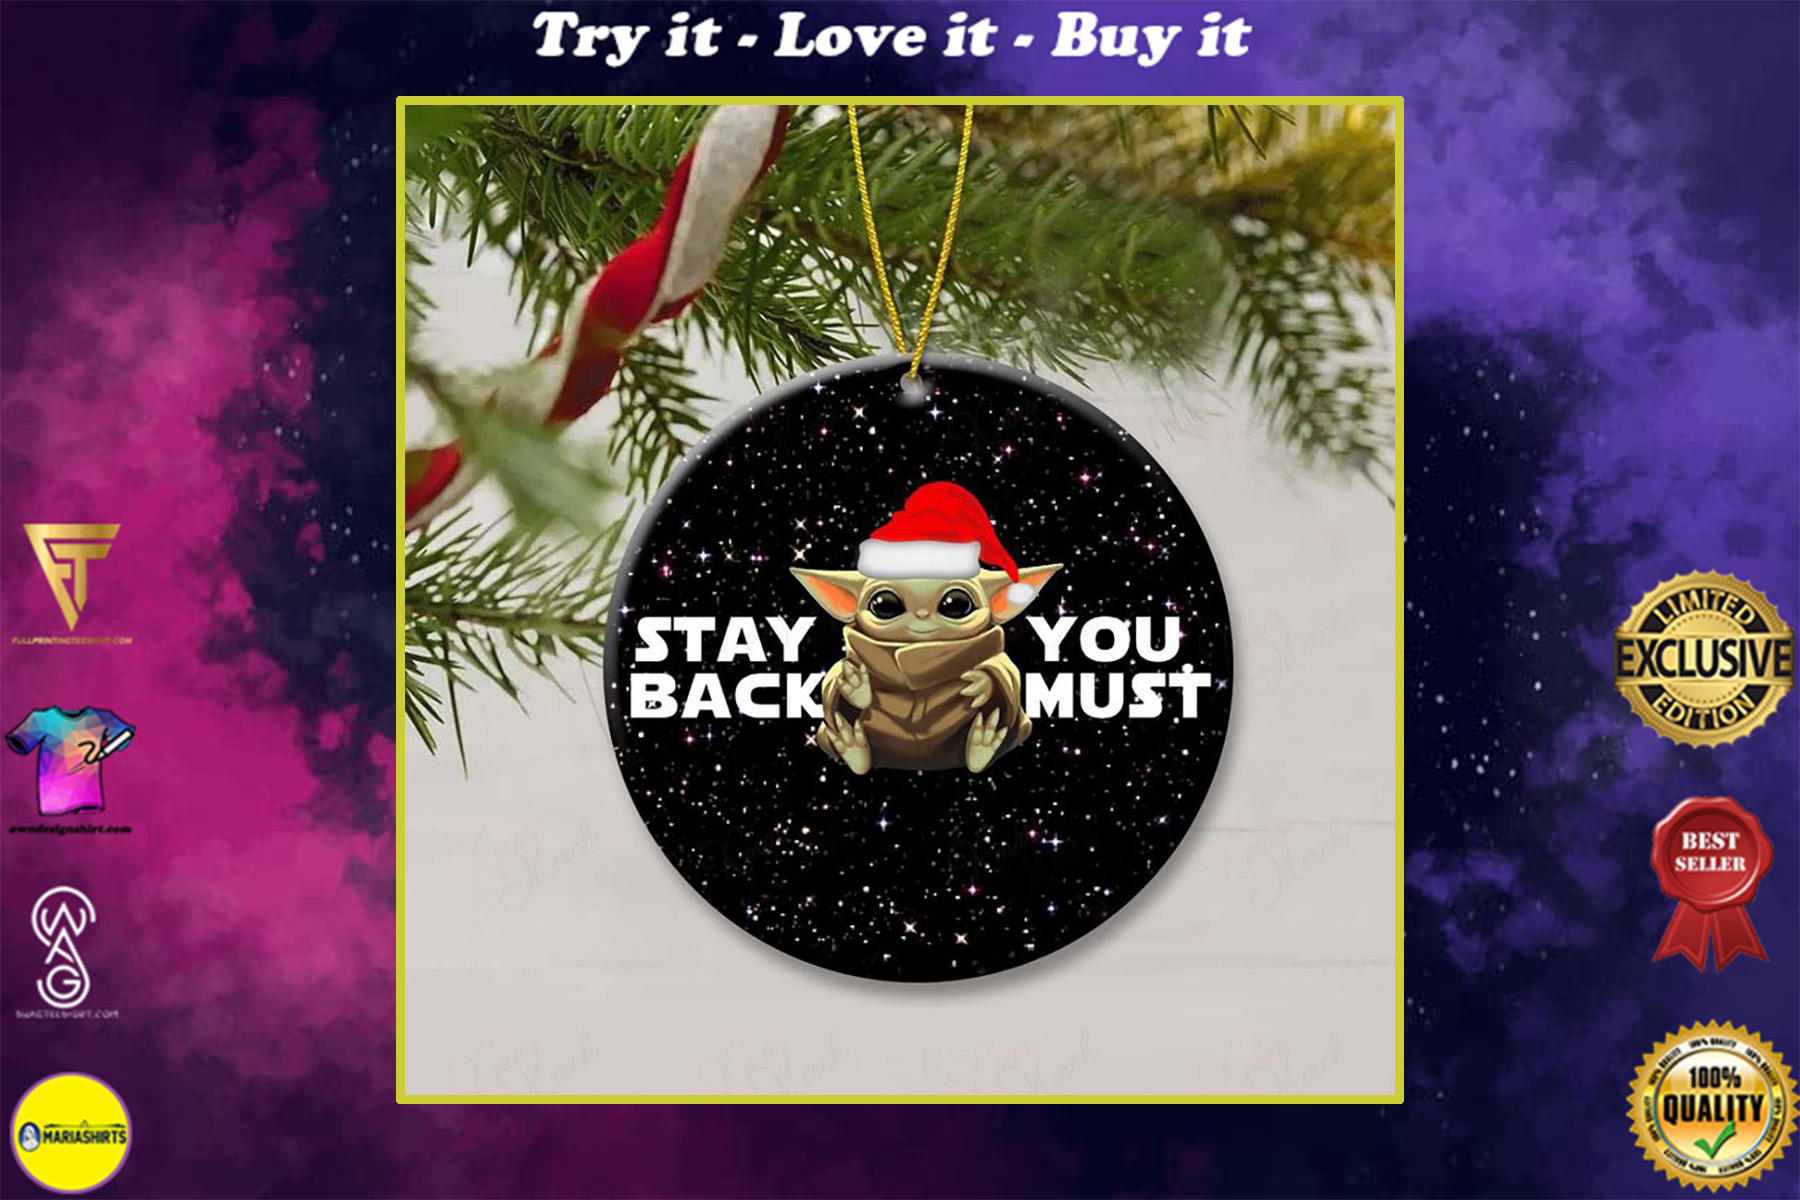 star wars baby yoda stay back you must christmas ornament